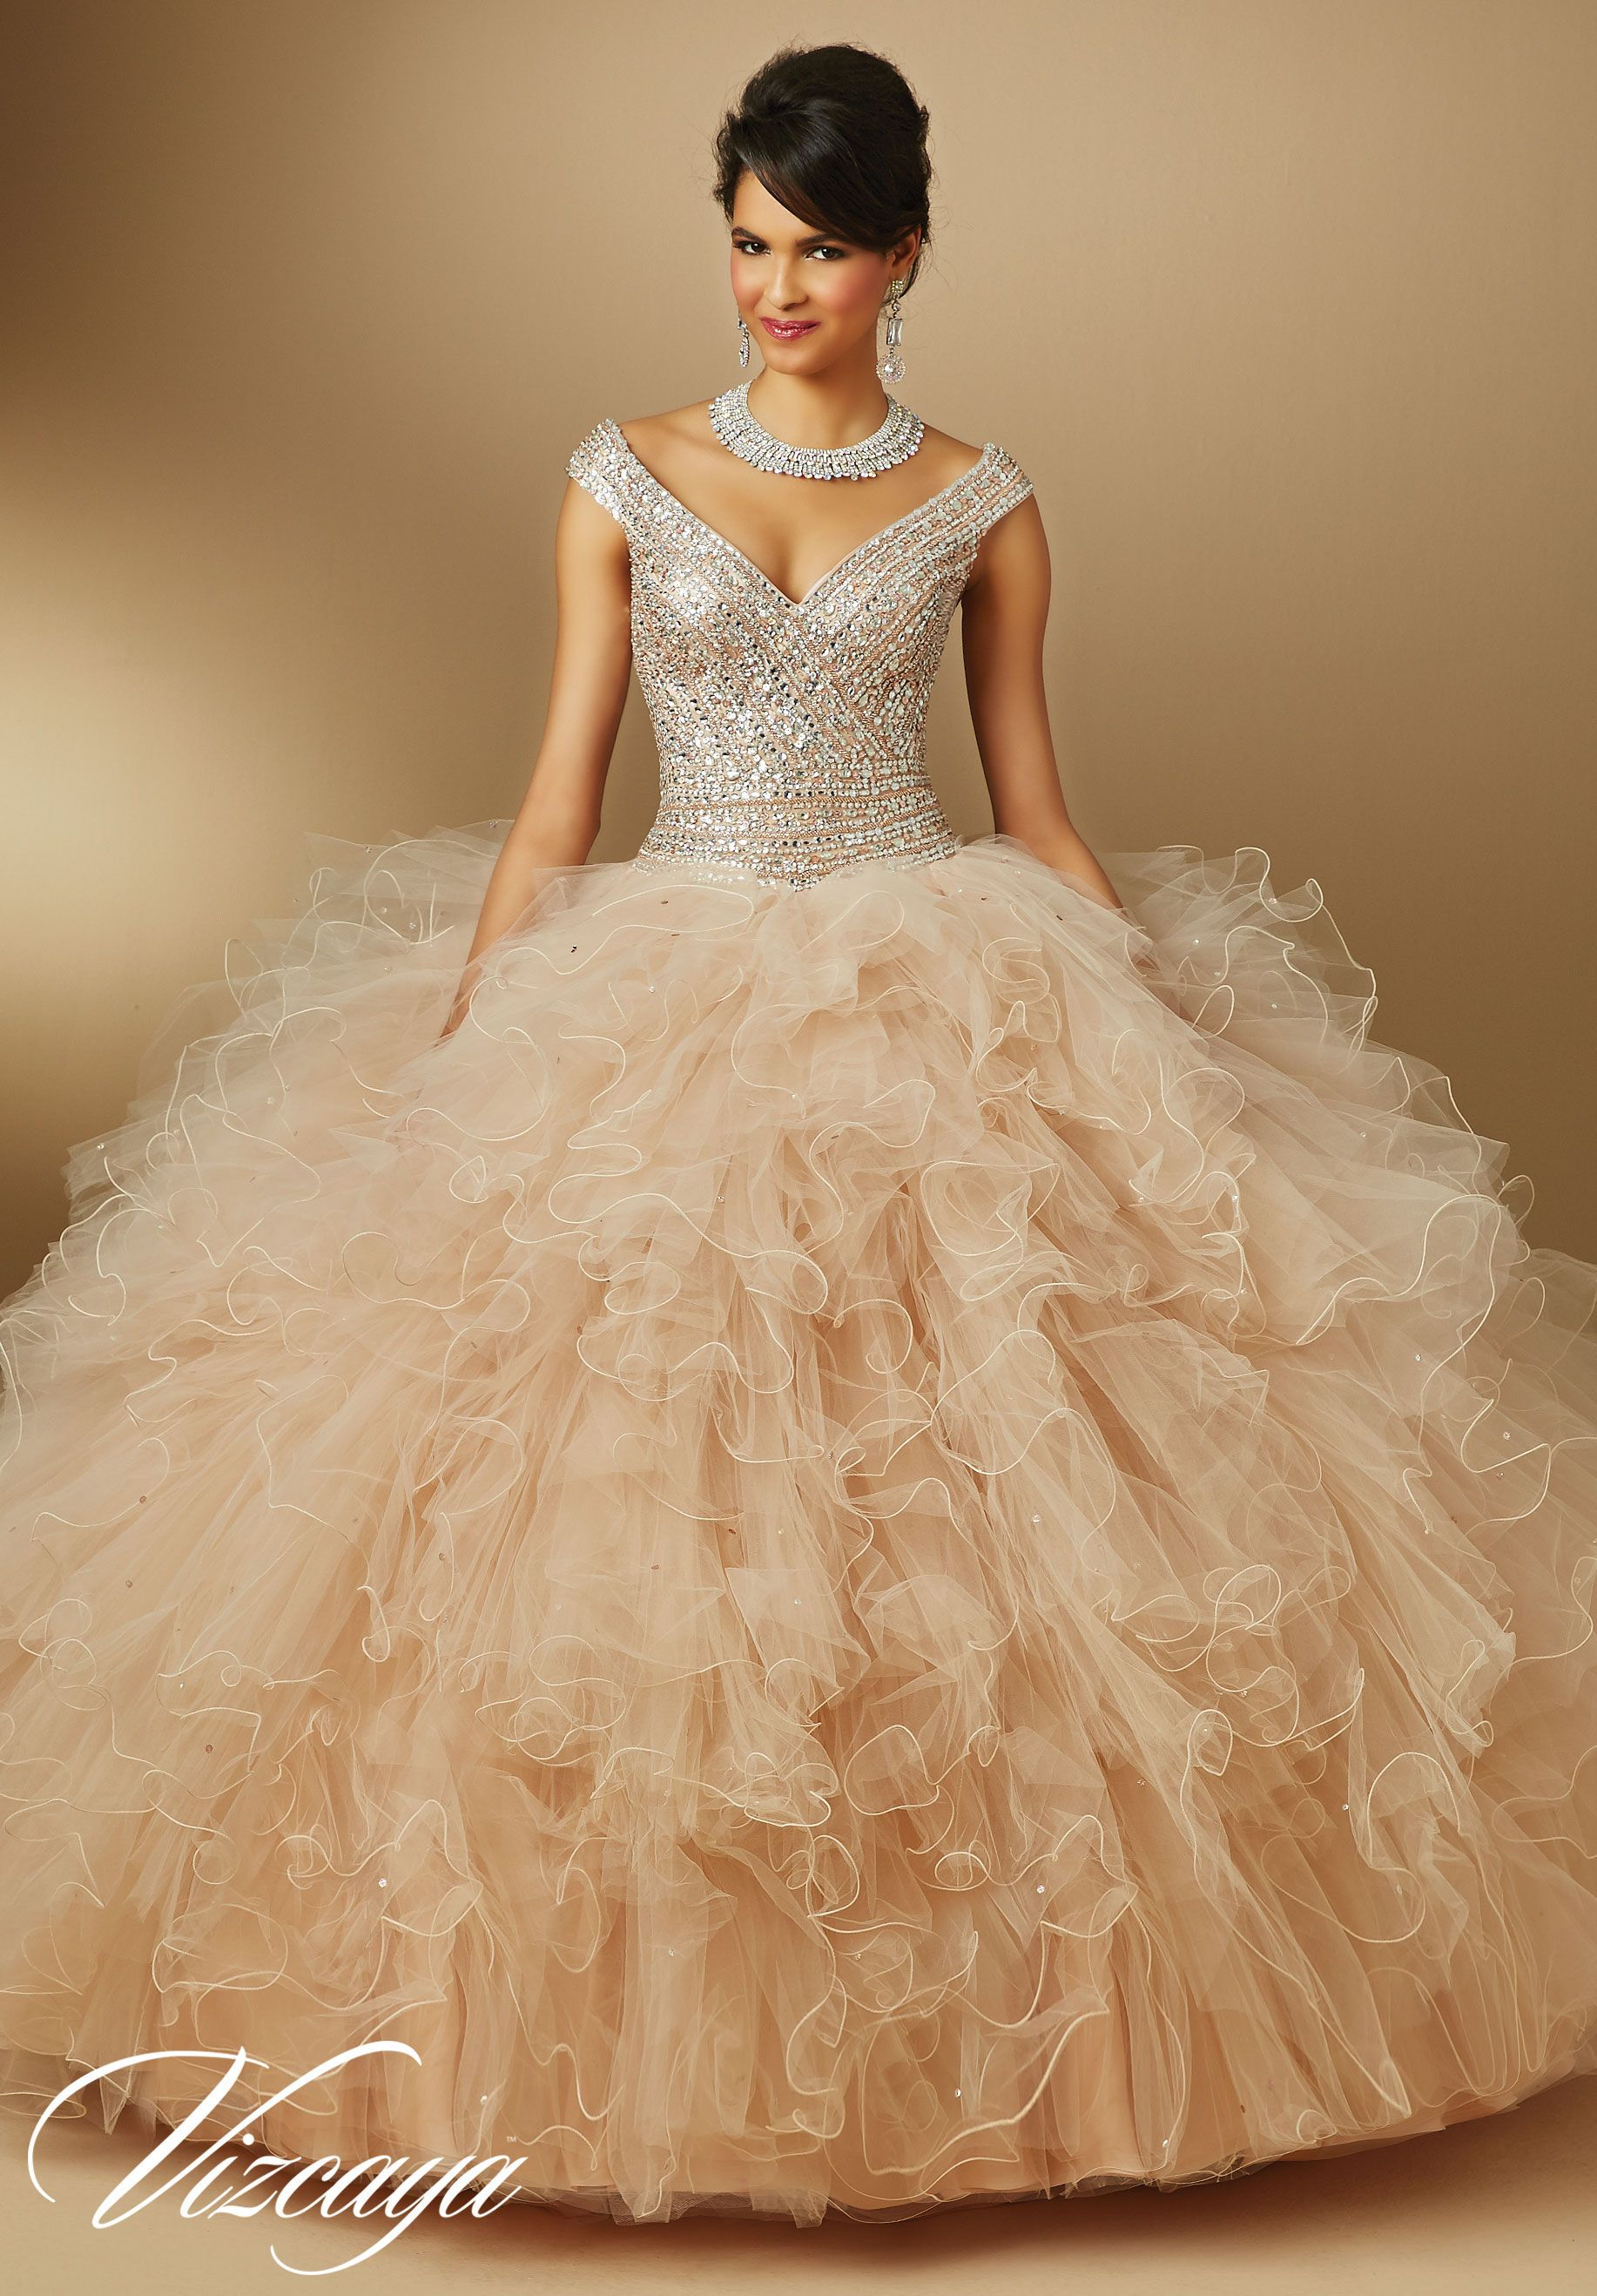 Quinceanera dresses by Vizcaya Ruffled Tulle with Beading Matching ...